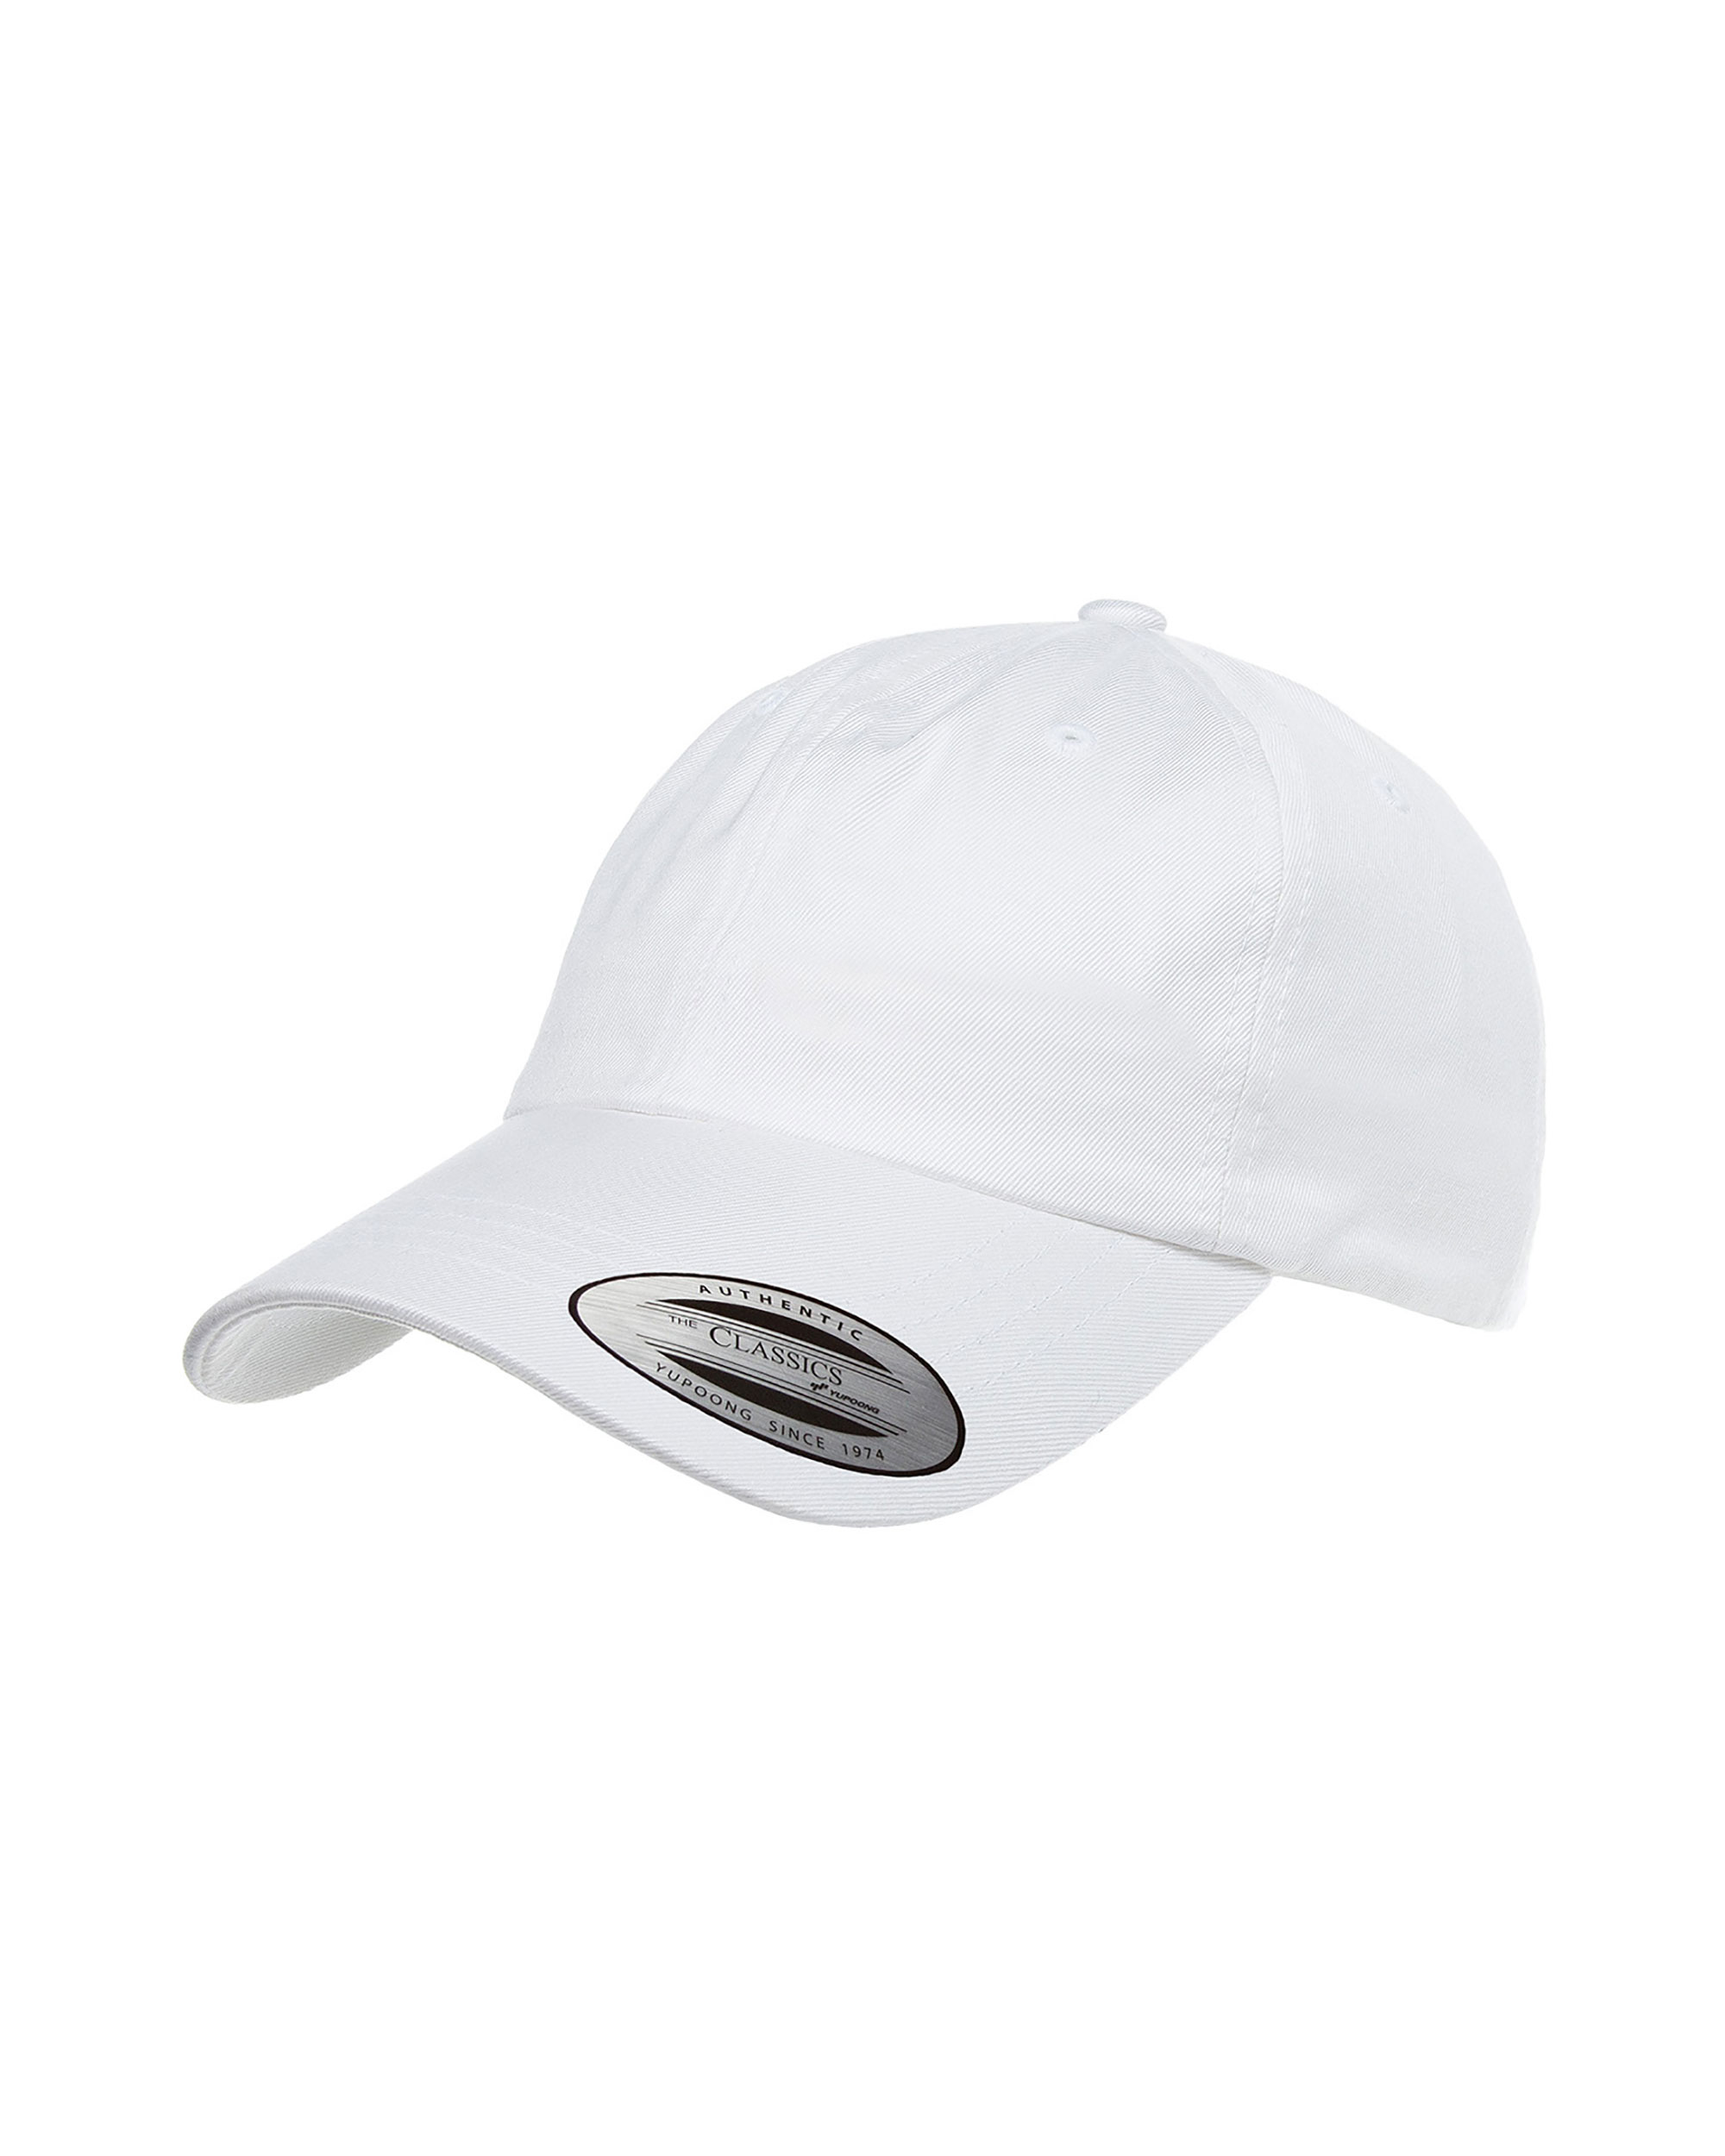 8c346cc670f Yupoong - Yupoong Adult Low-Profile Cotton Twill Dad Cap